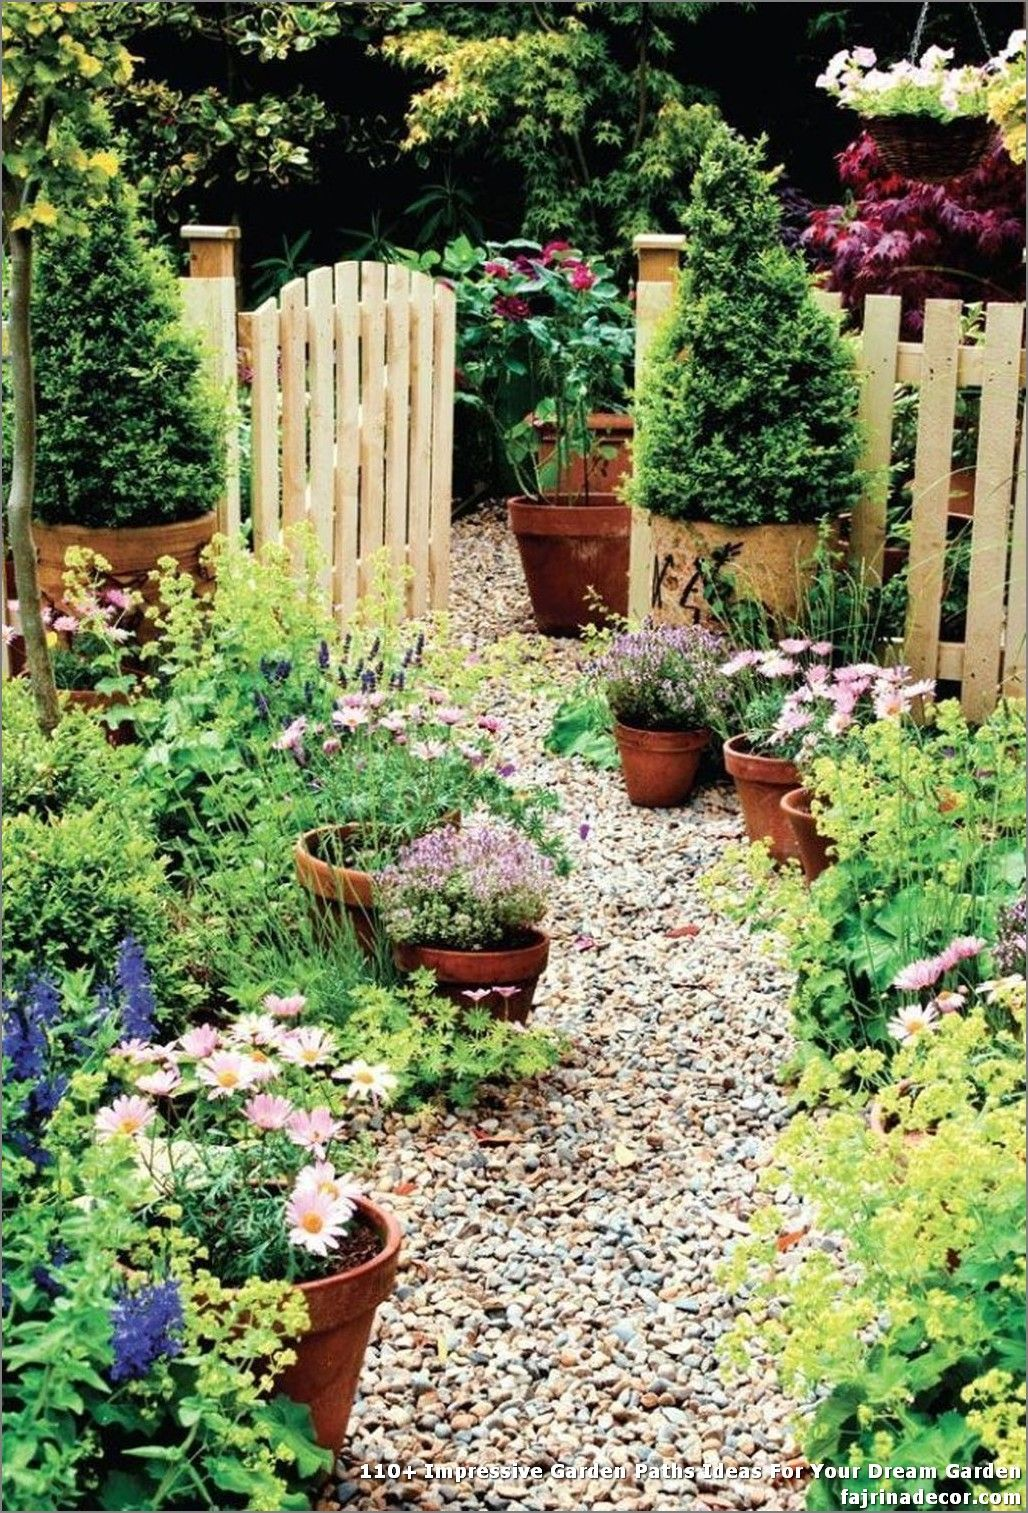 Photo of 110+ Impressive Garden Paths Ideas For Your Dream Garden